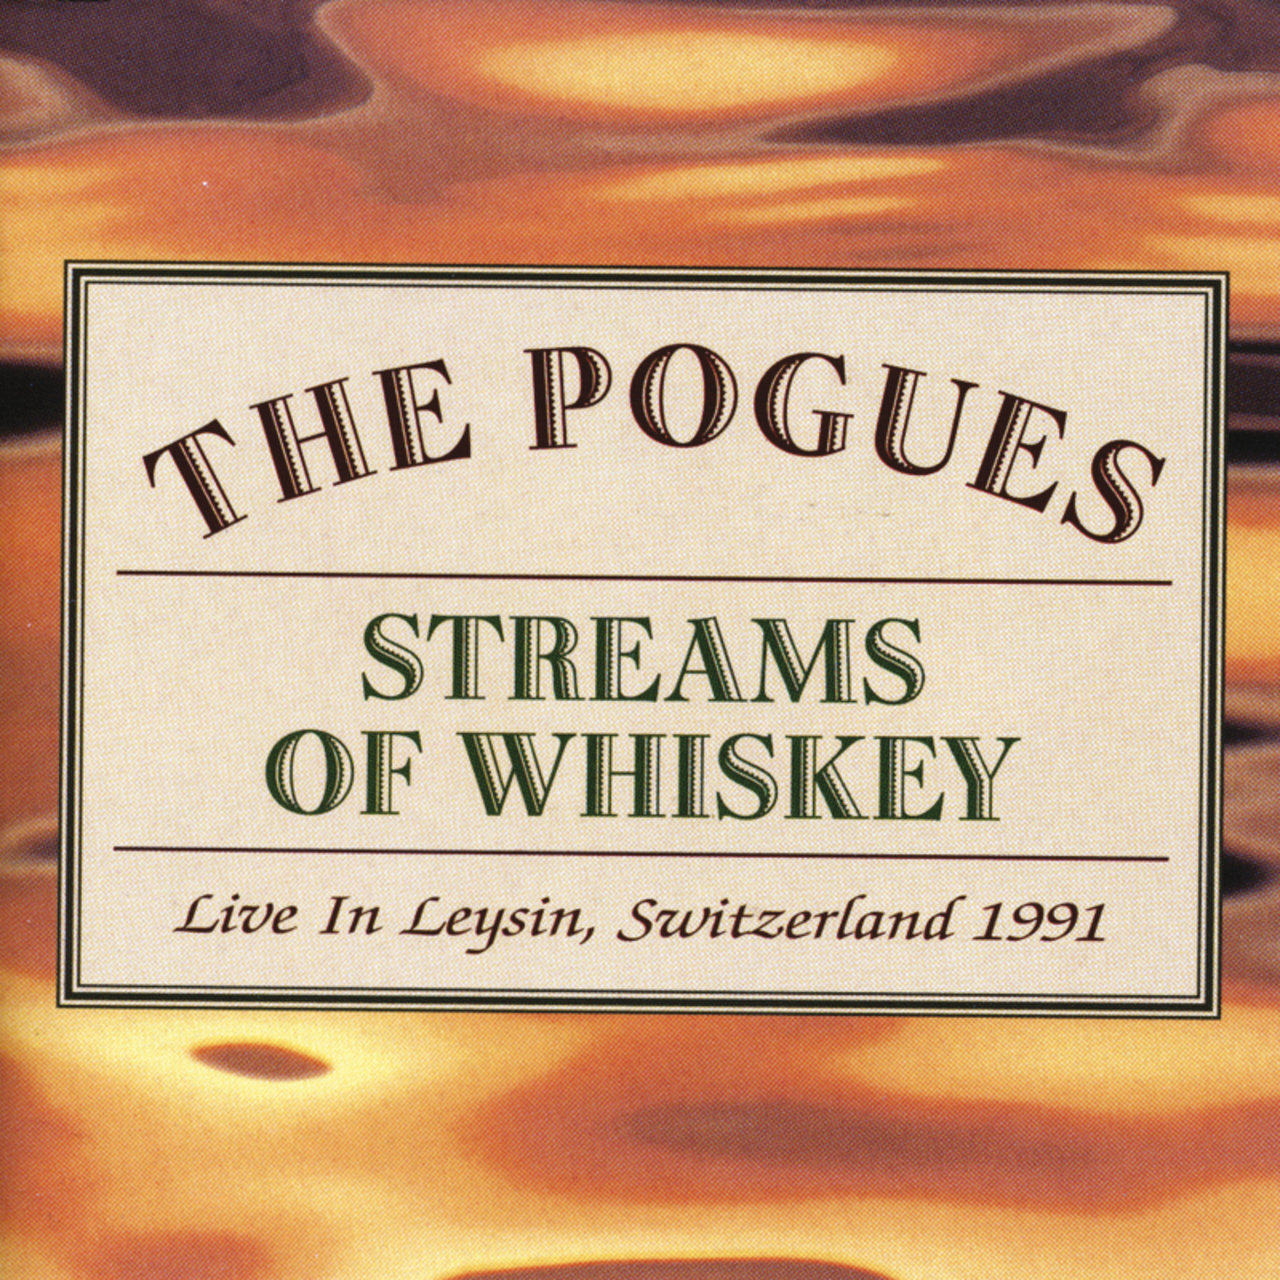 Streams Of Whiskey: Live In Leysin, Switzerland 1991